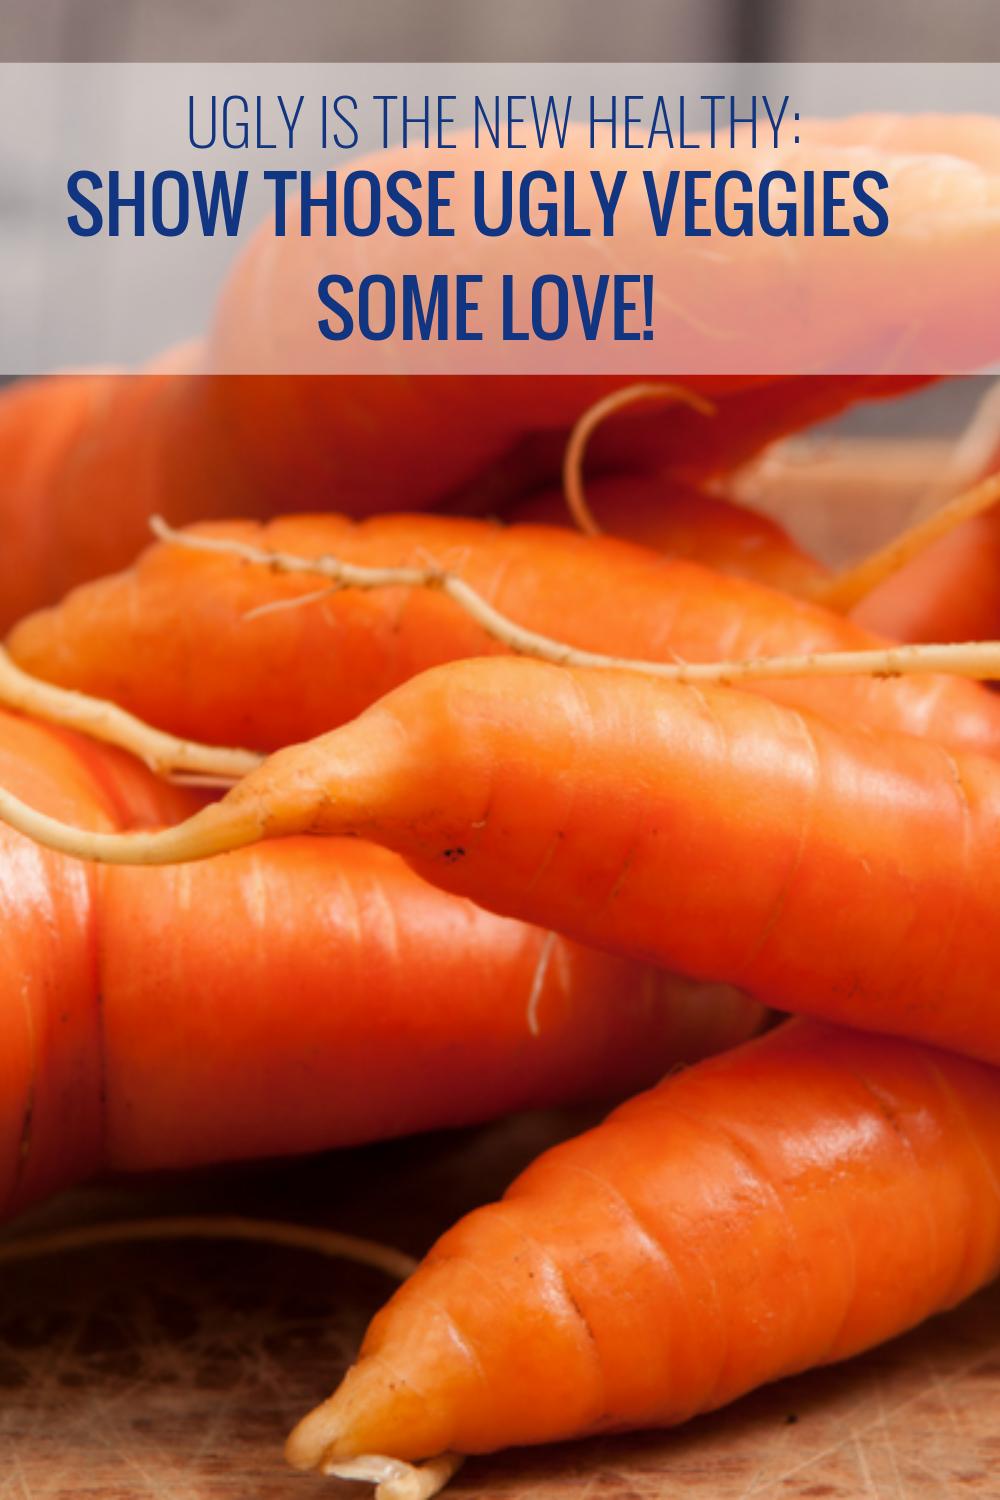 Ugly is the New Healthy: Show Those Ugly Veggies Some Love!